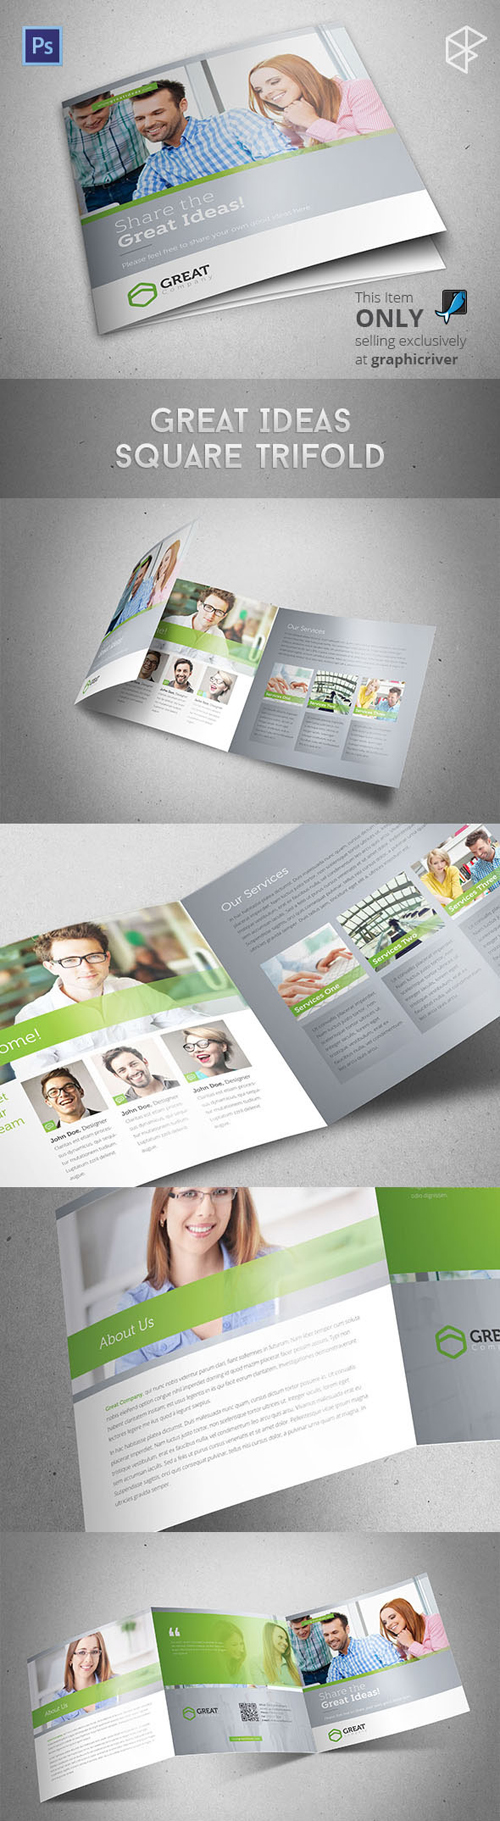 Square Trifold Brochure Design